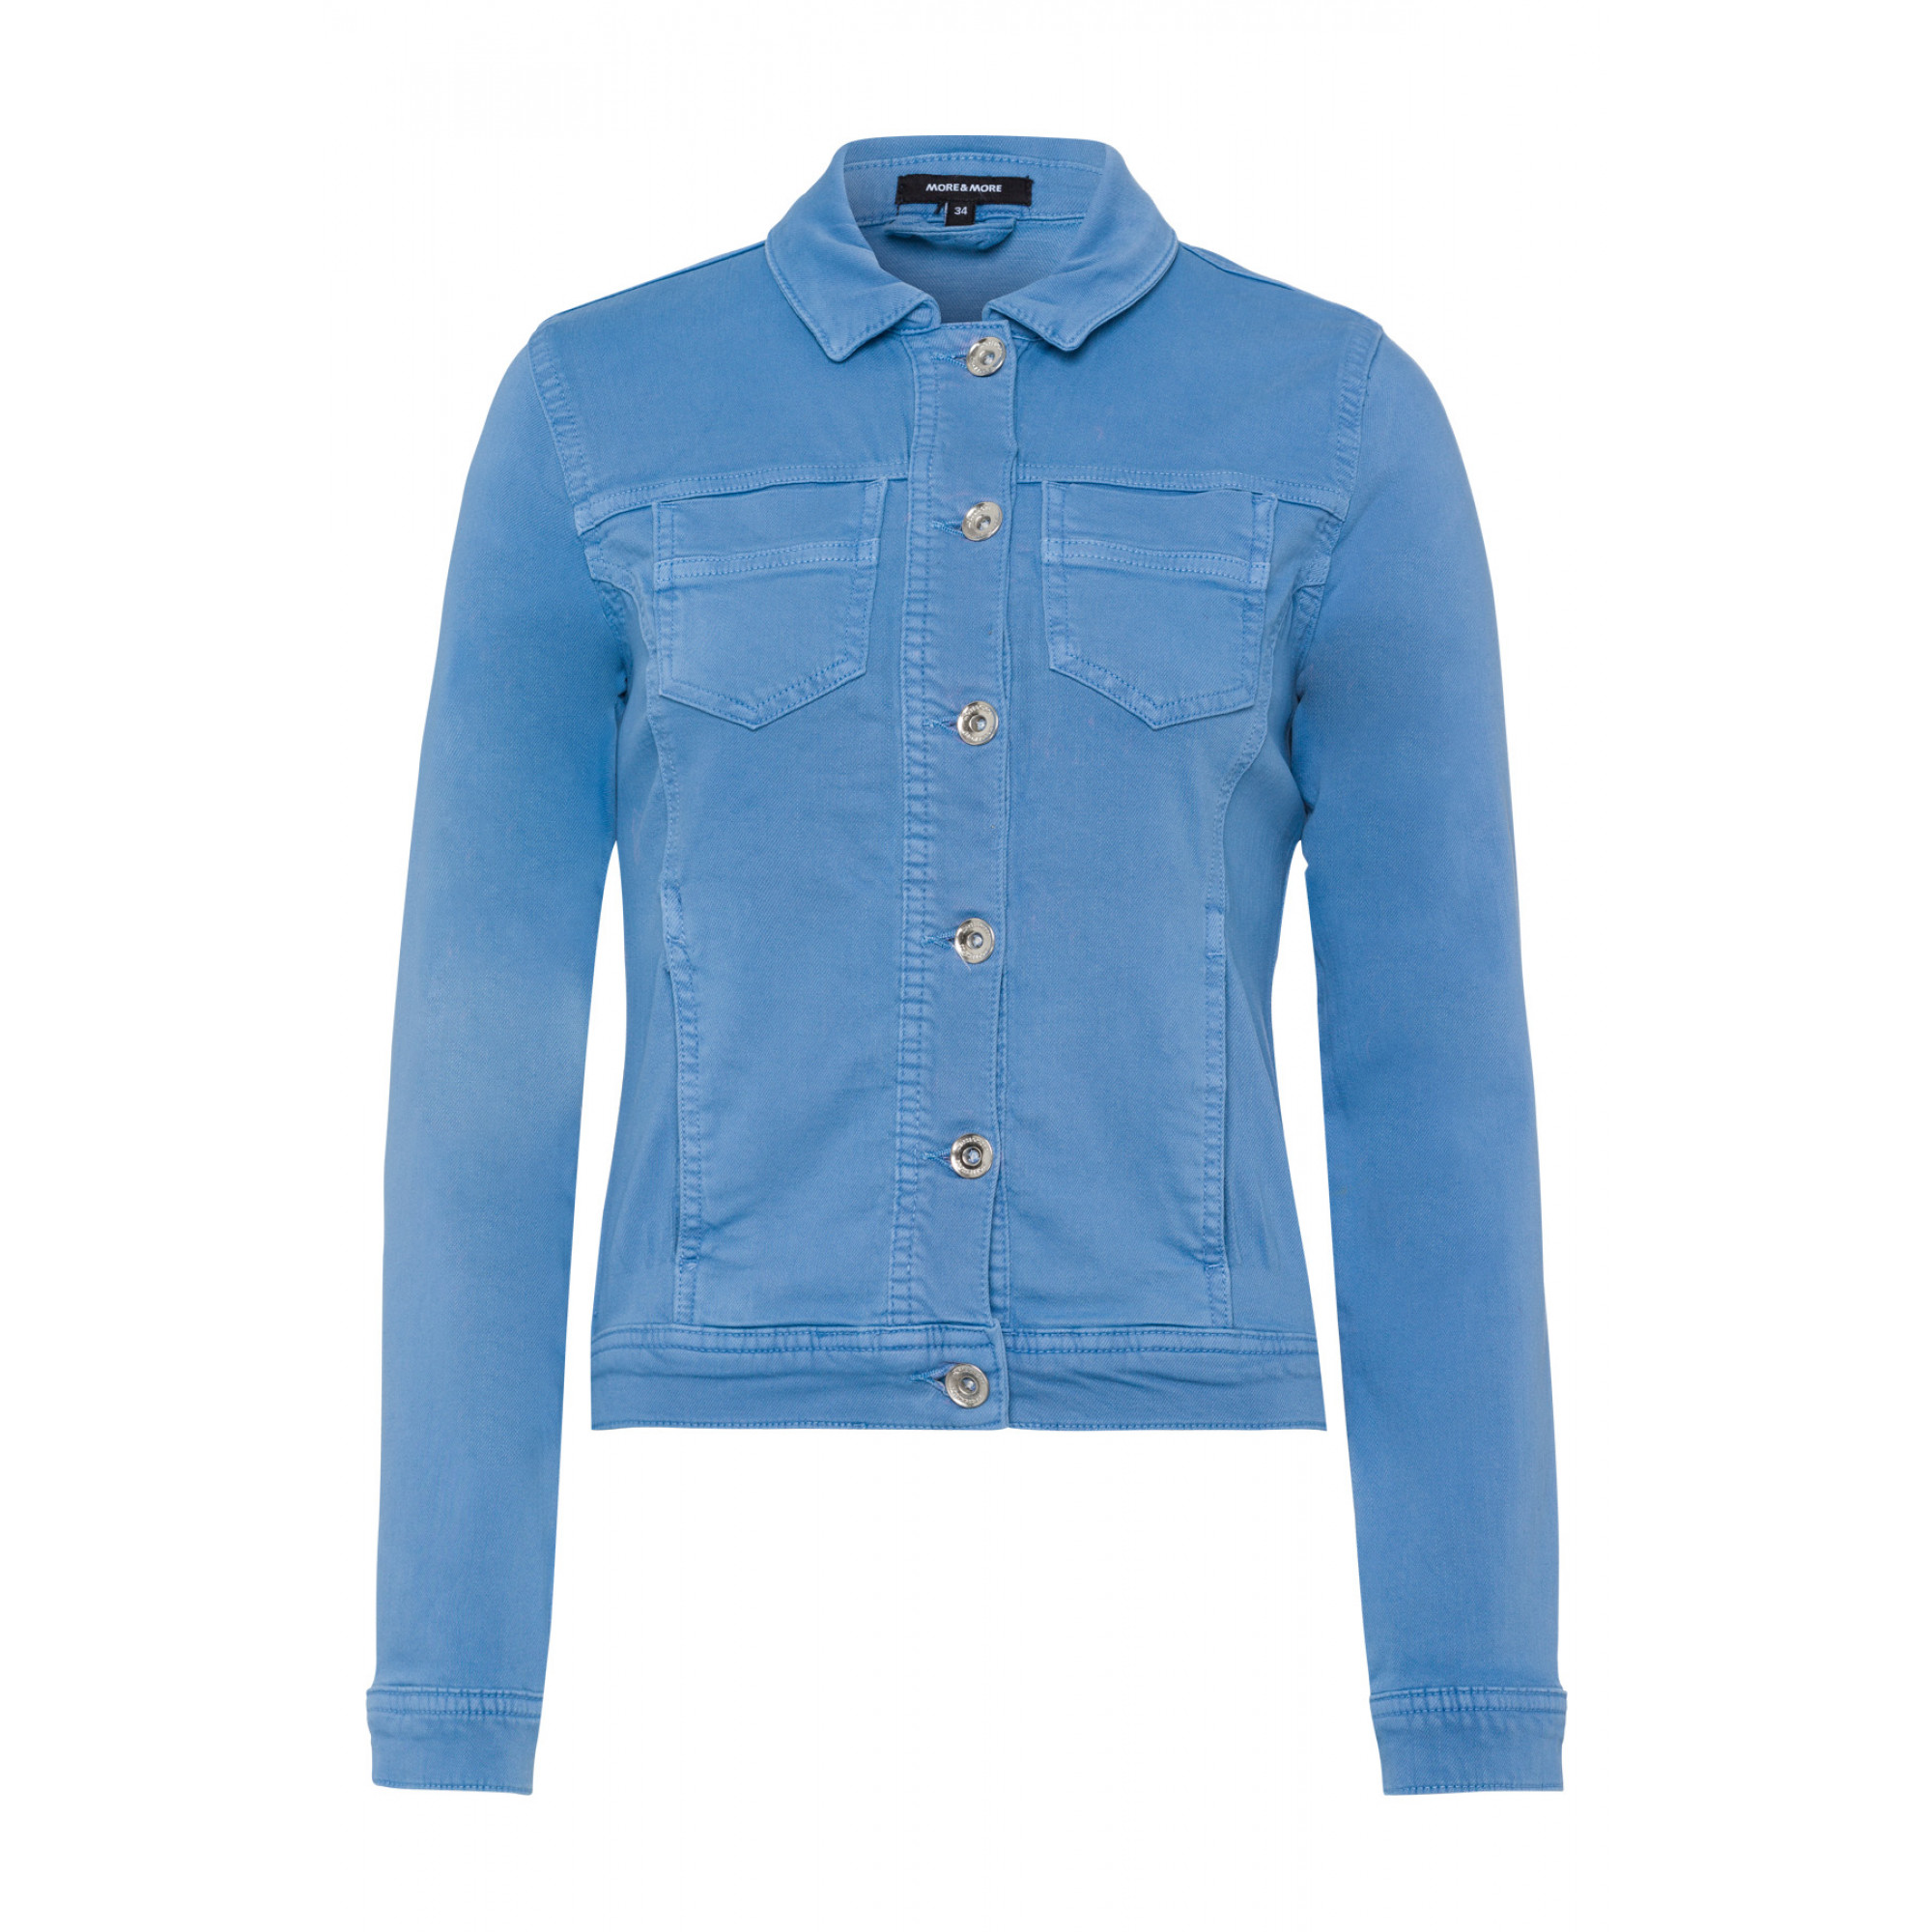 Jeansjacke, new blue 91026200-0322 1